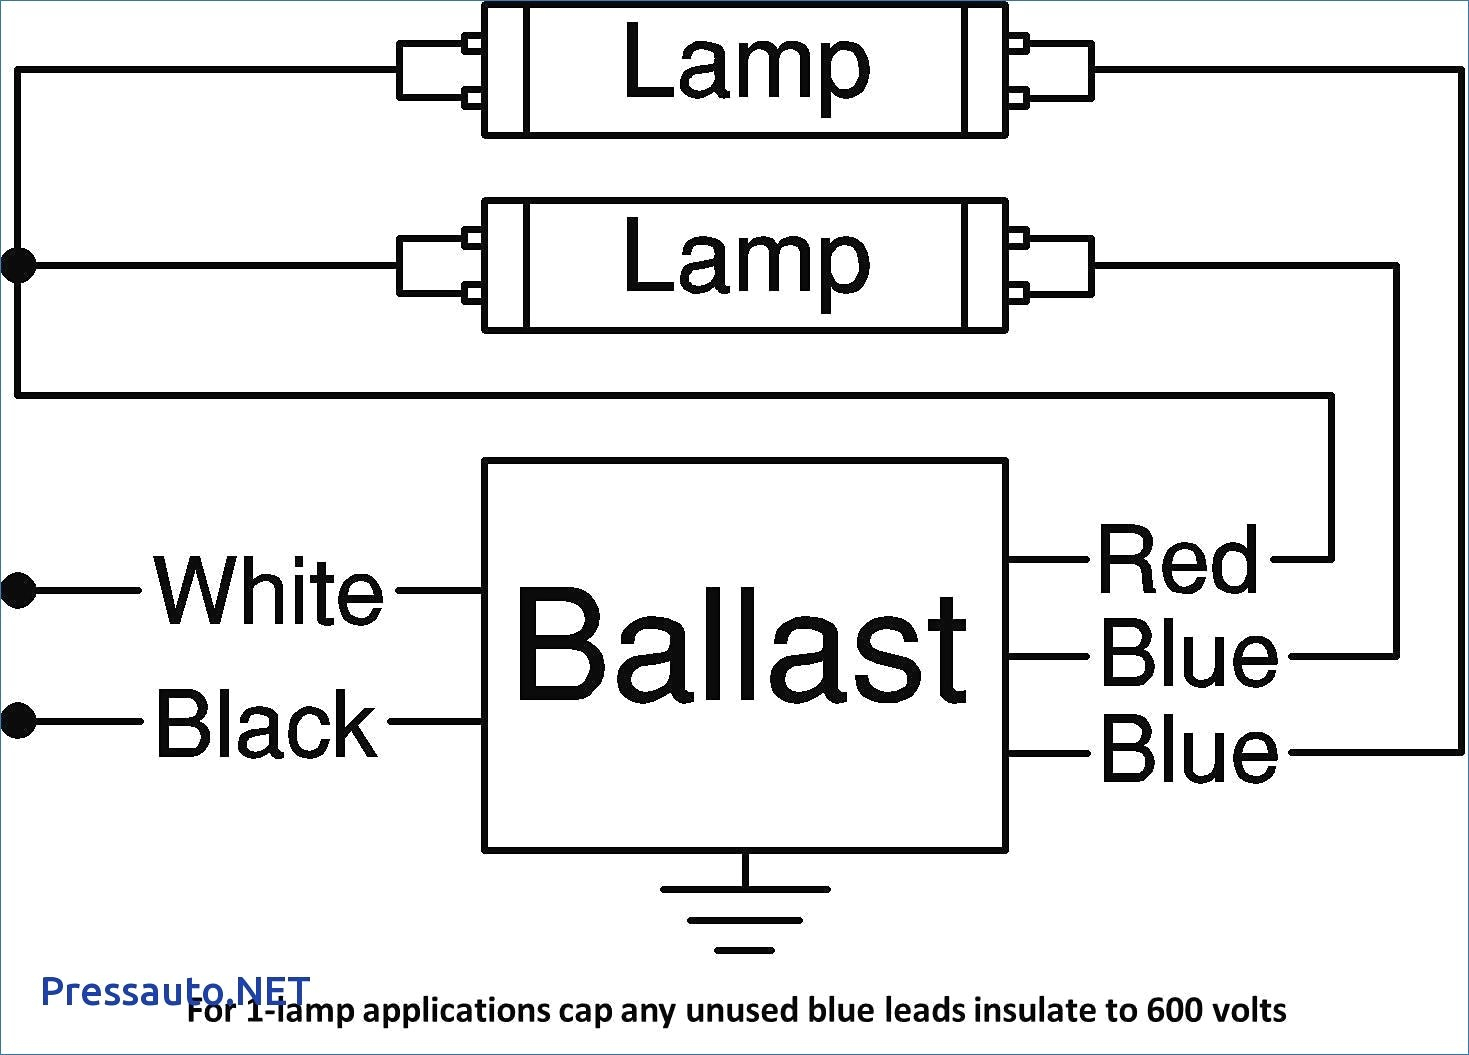 hight resolution of electronic ballast wiring diagram 2 lamp ballast wiring diagram unique 13d